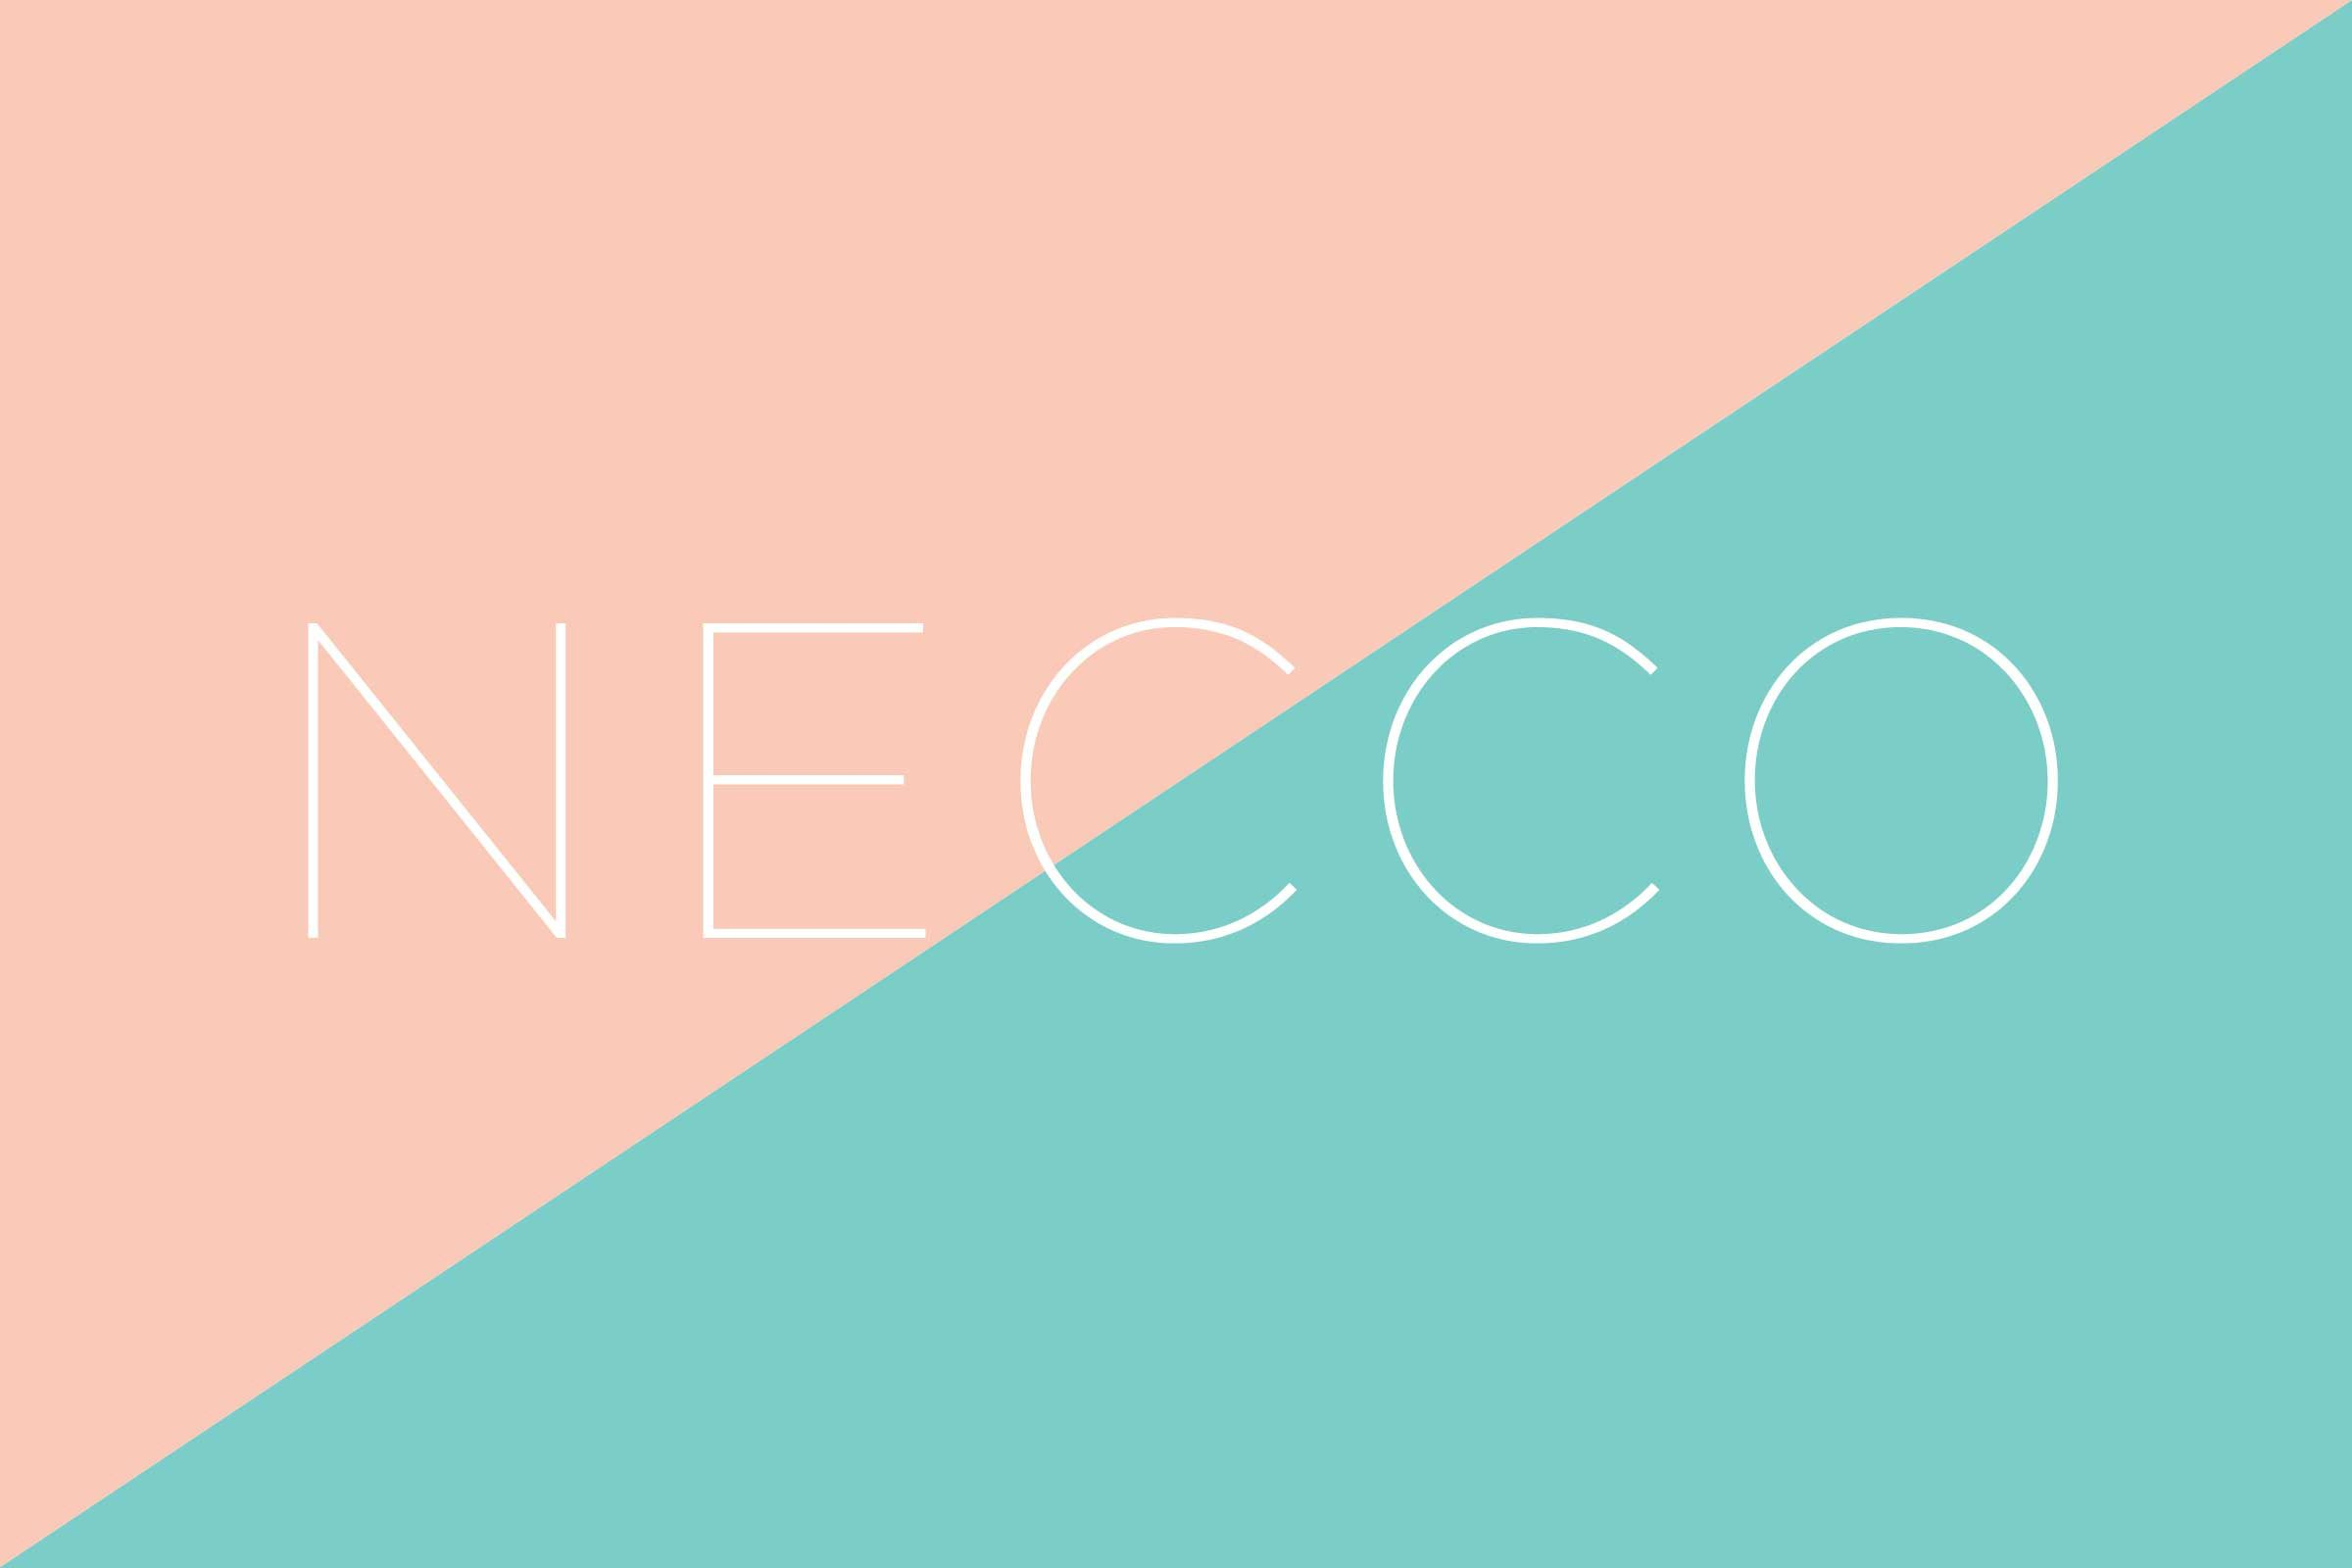 What does NECCO stand for?